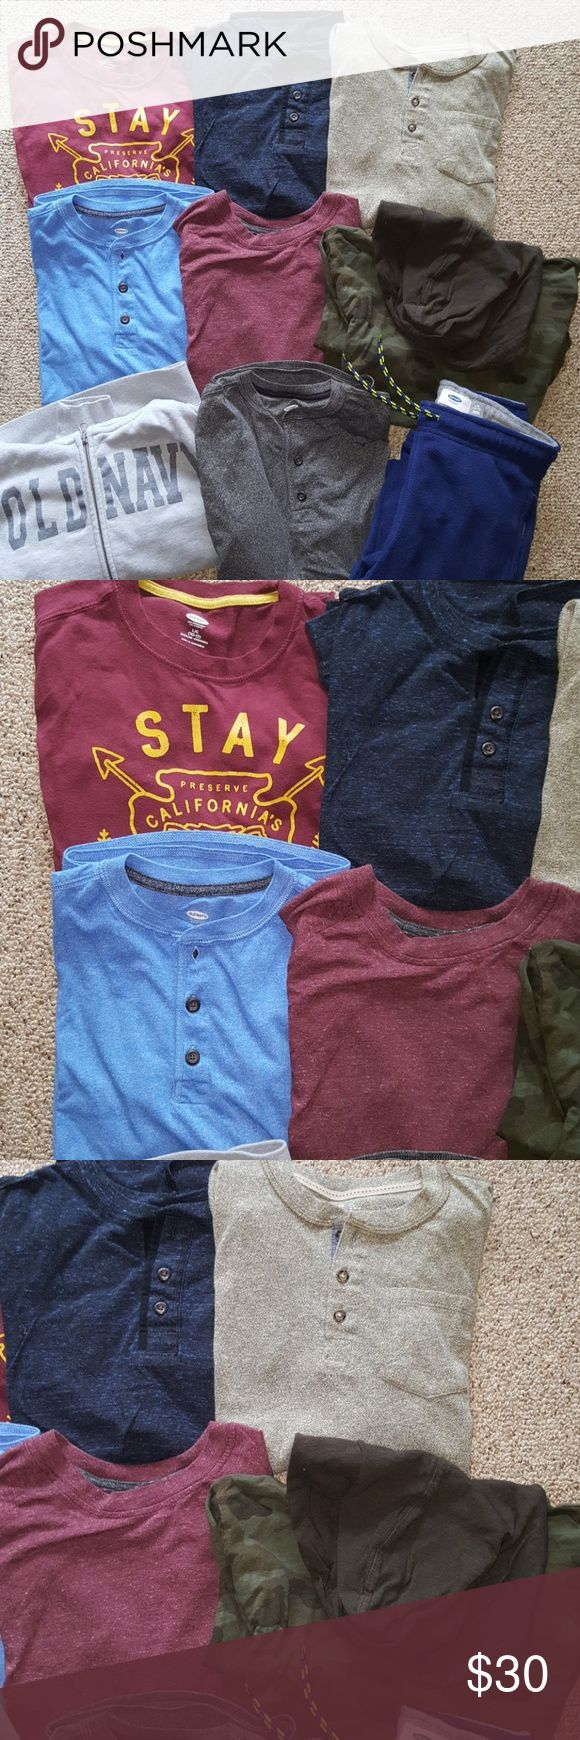 Boys long sleeve bundle size 10-12 All shirts are long sleeve (and from Old Navy with the exception of one from GAP) size 10-12. Worn once at most. Grey old navy zip up hoodie size 10-12 and brand new navy fleece pants size 10-12. No flaws. Smoke free home. Old Navy Shirts & Tops Tees - Long Sleeve